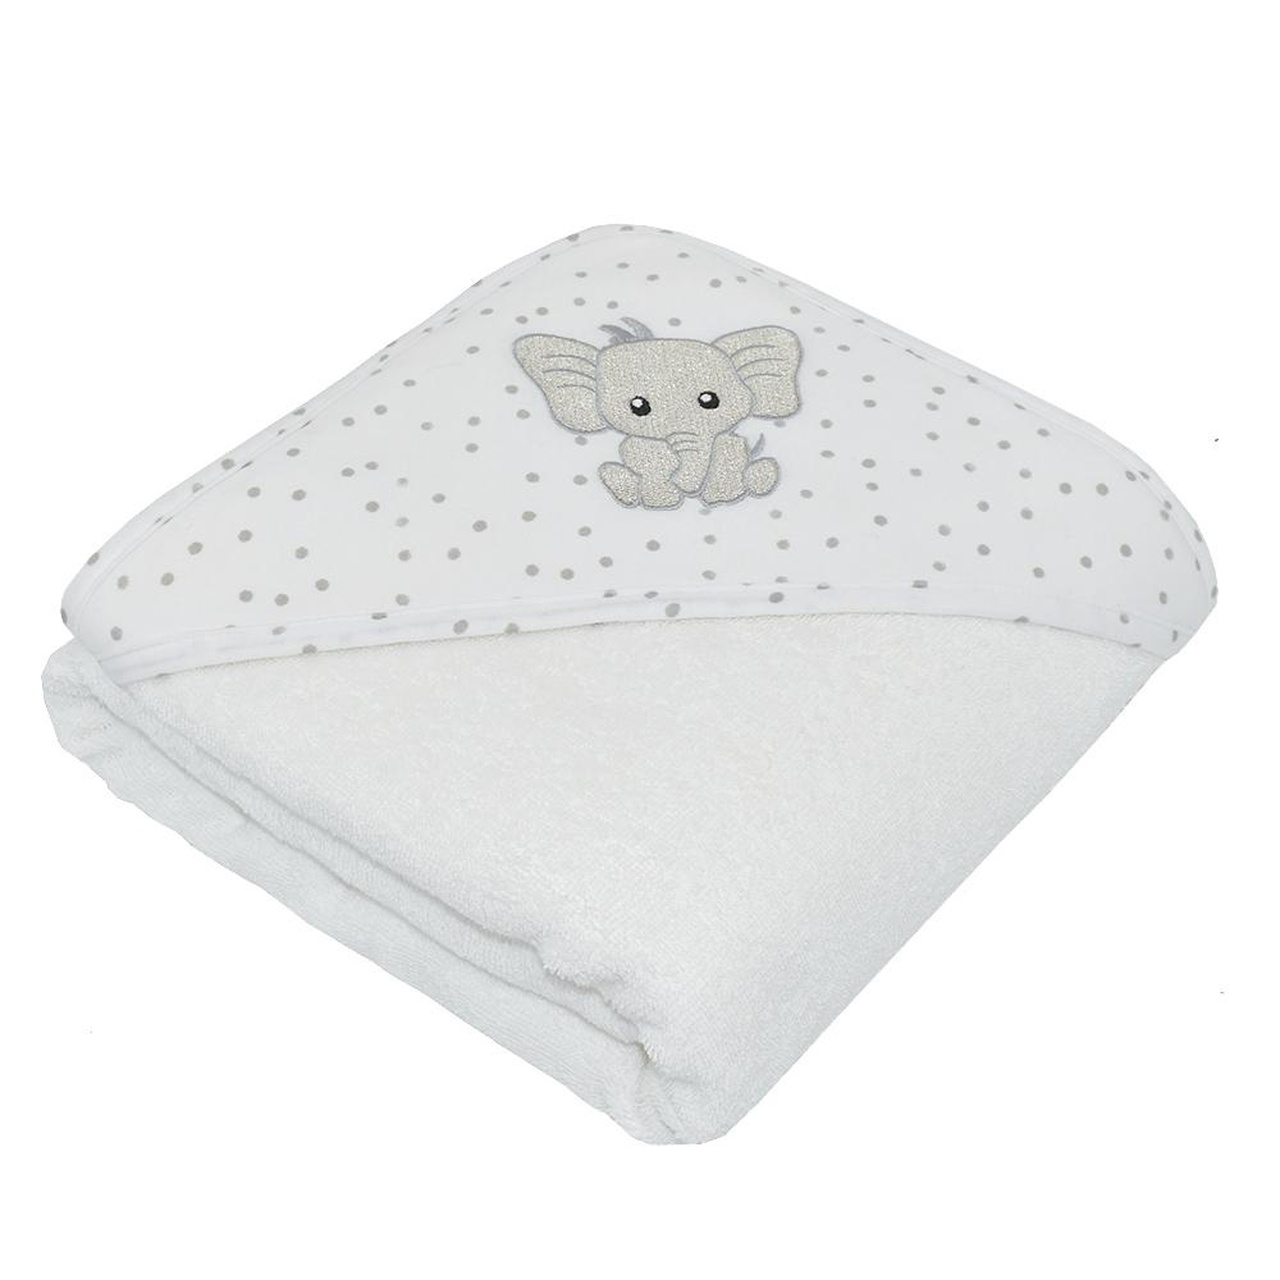 Living Textiles Hooded Towel at Baby Barn Discounts Living Textiles hooded towel is lightweight and luxurious, crafted from 100% cotton.